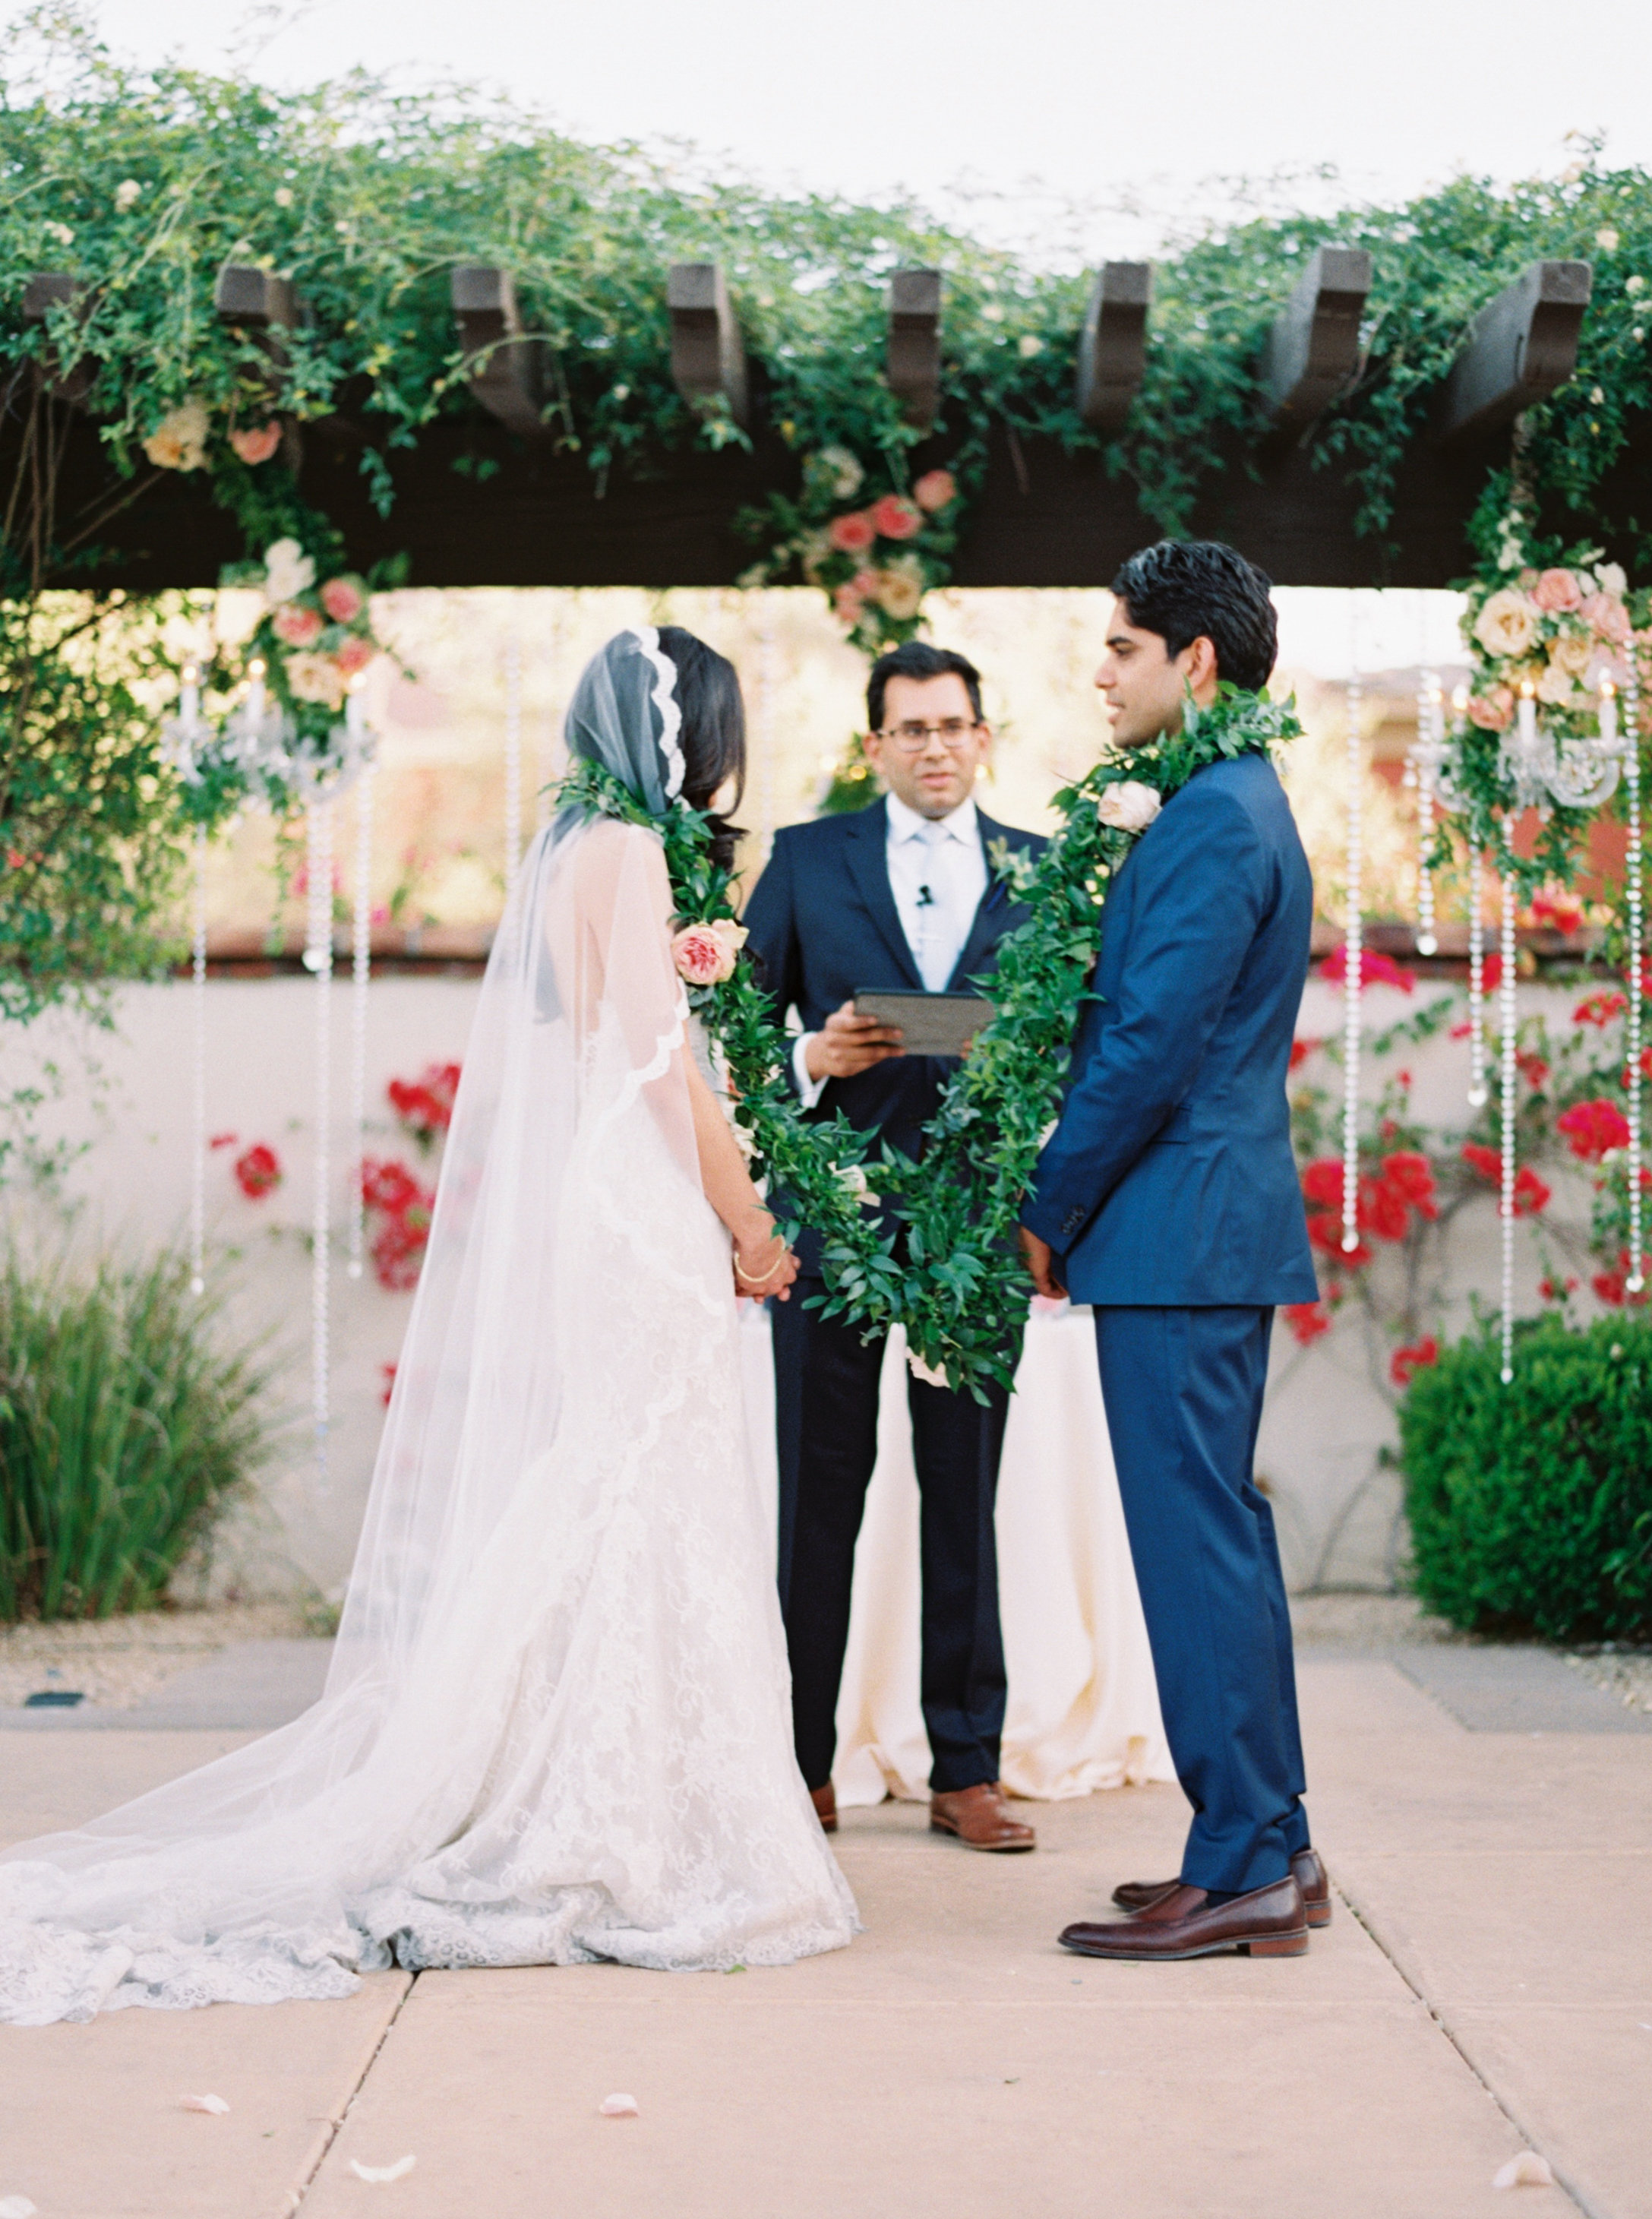 wedding, wedding planner, arizona wedding, destination wedding, bride and groom, wedding ceremony